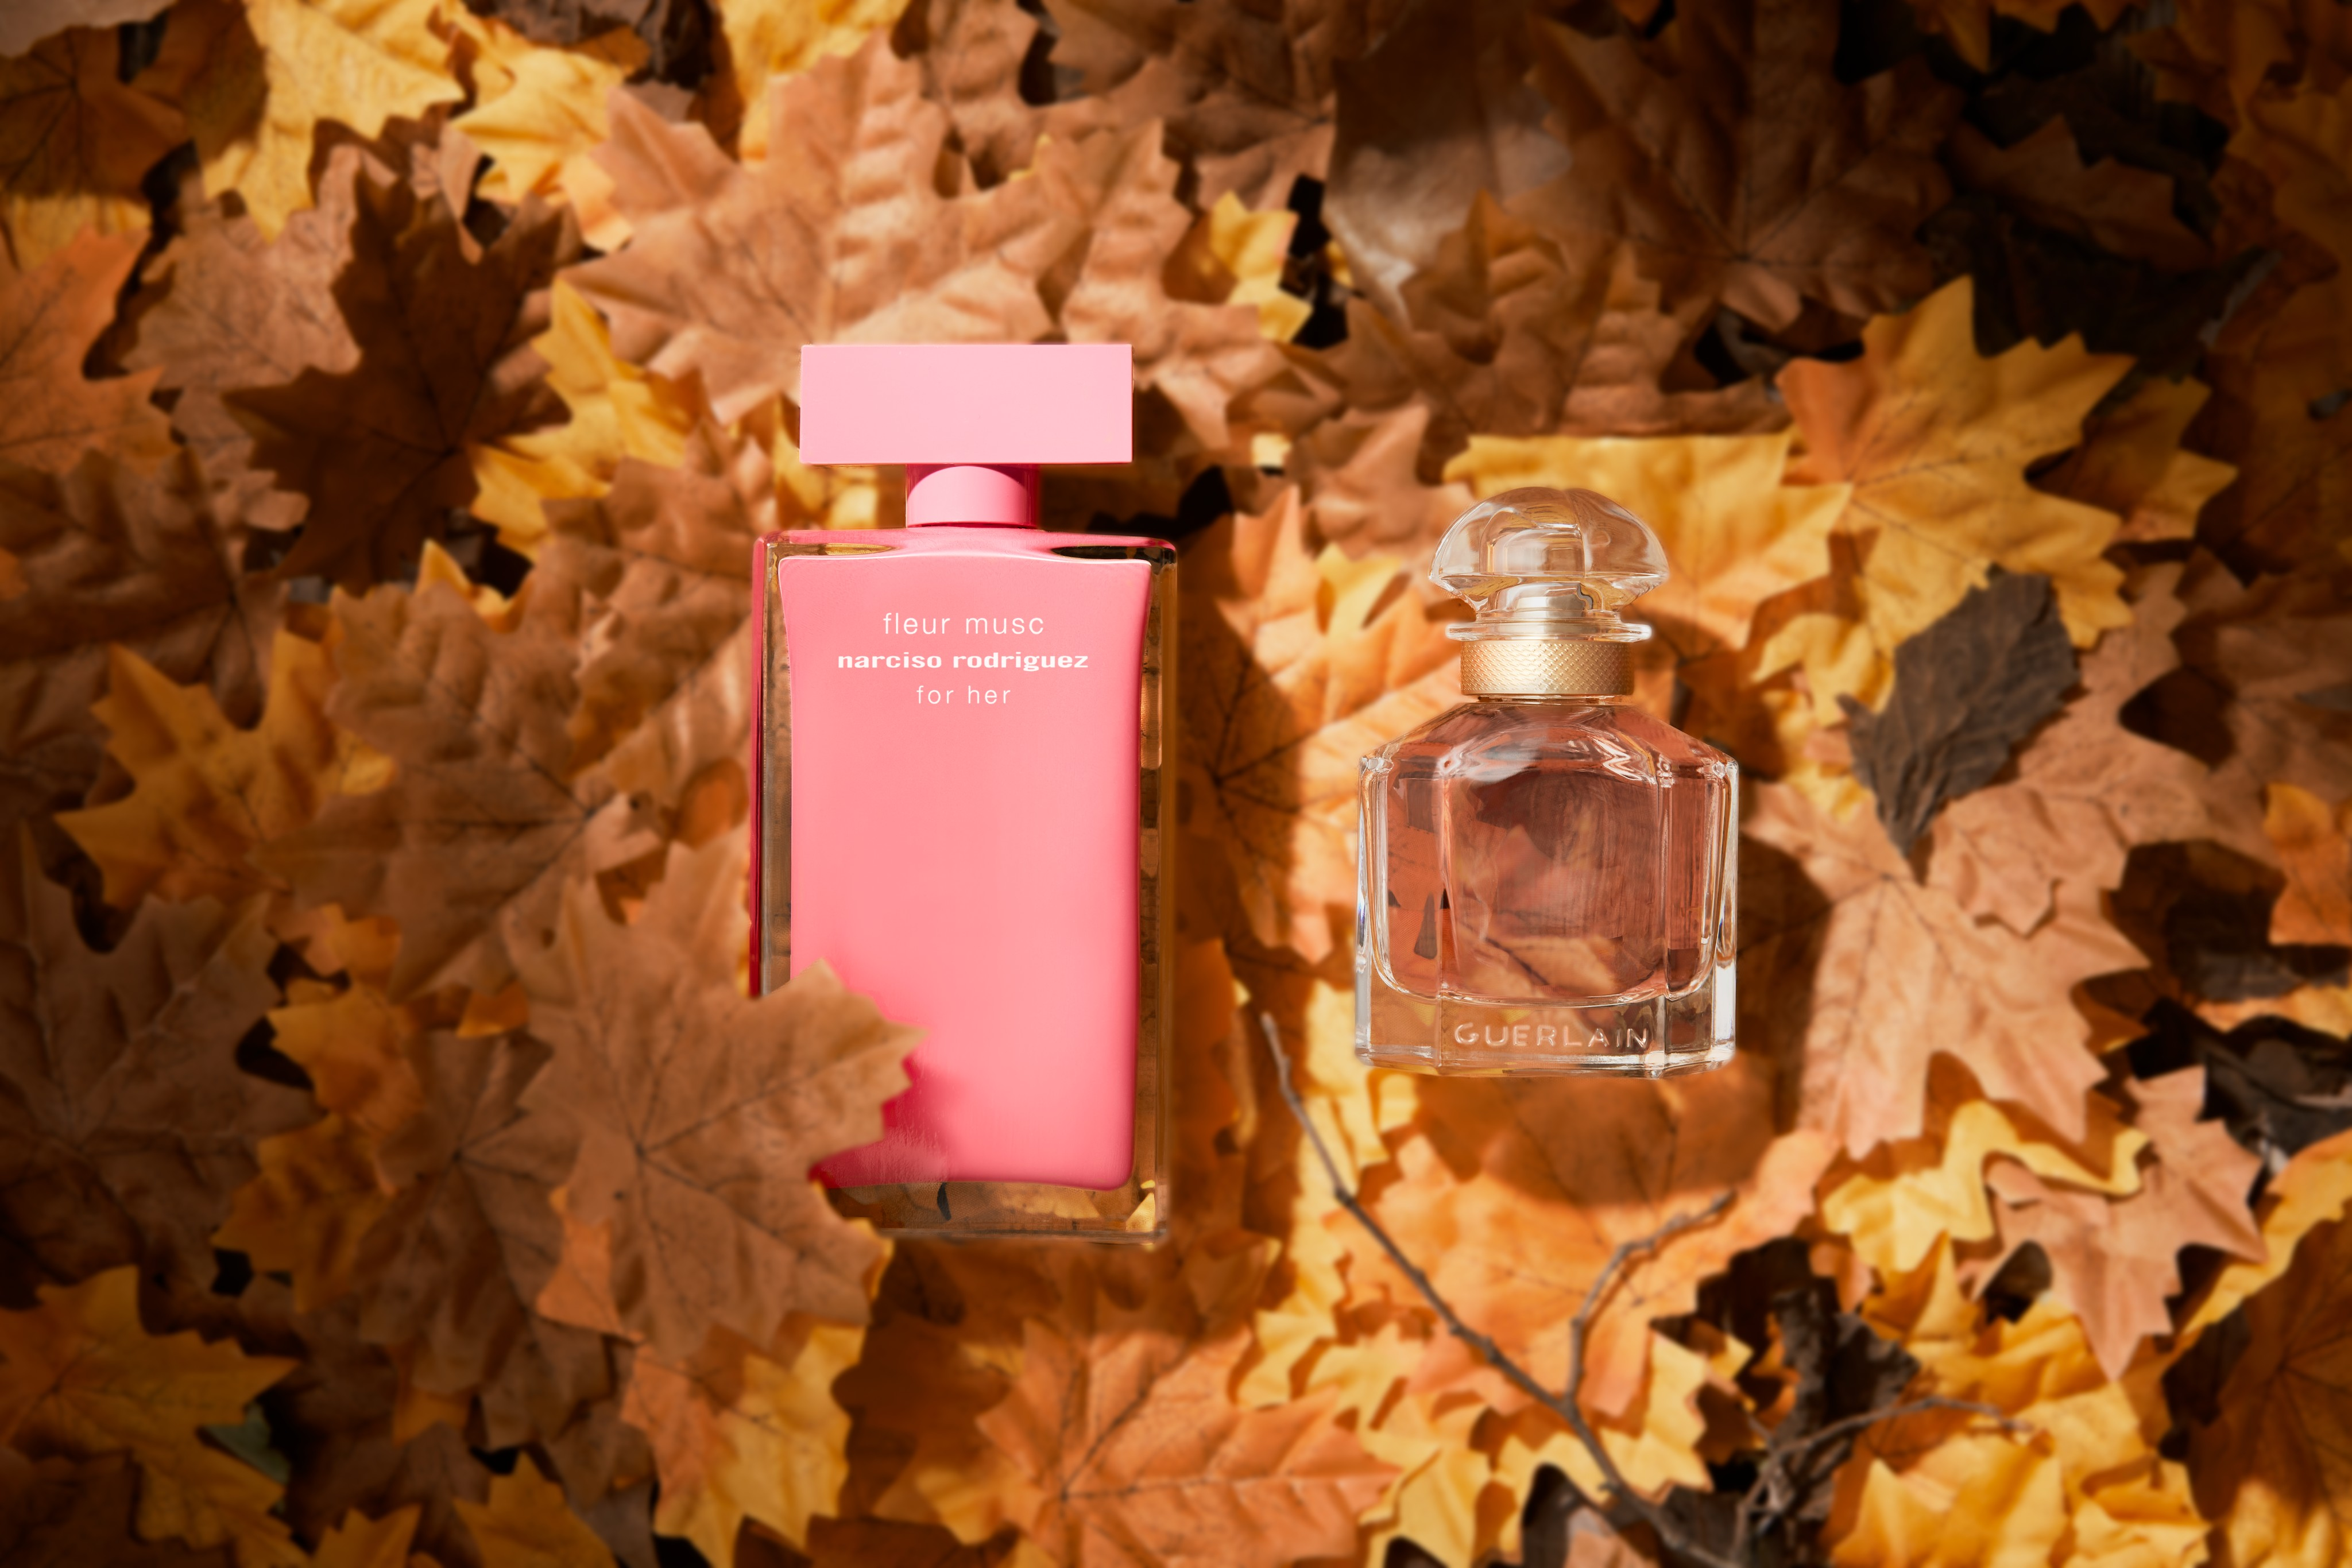 Fragrance-product-Guerlain-Narciso-autumn-leaves-unlimited-Web-Rendition